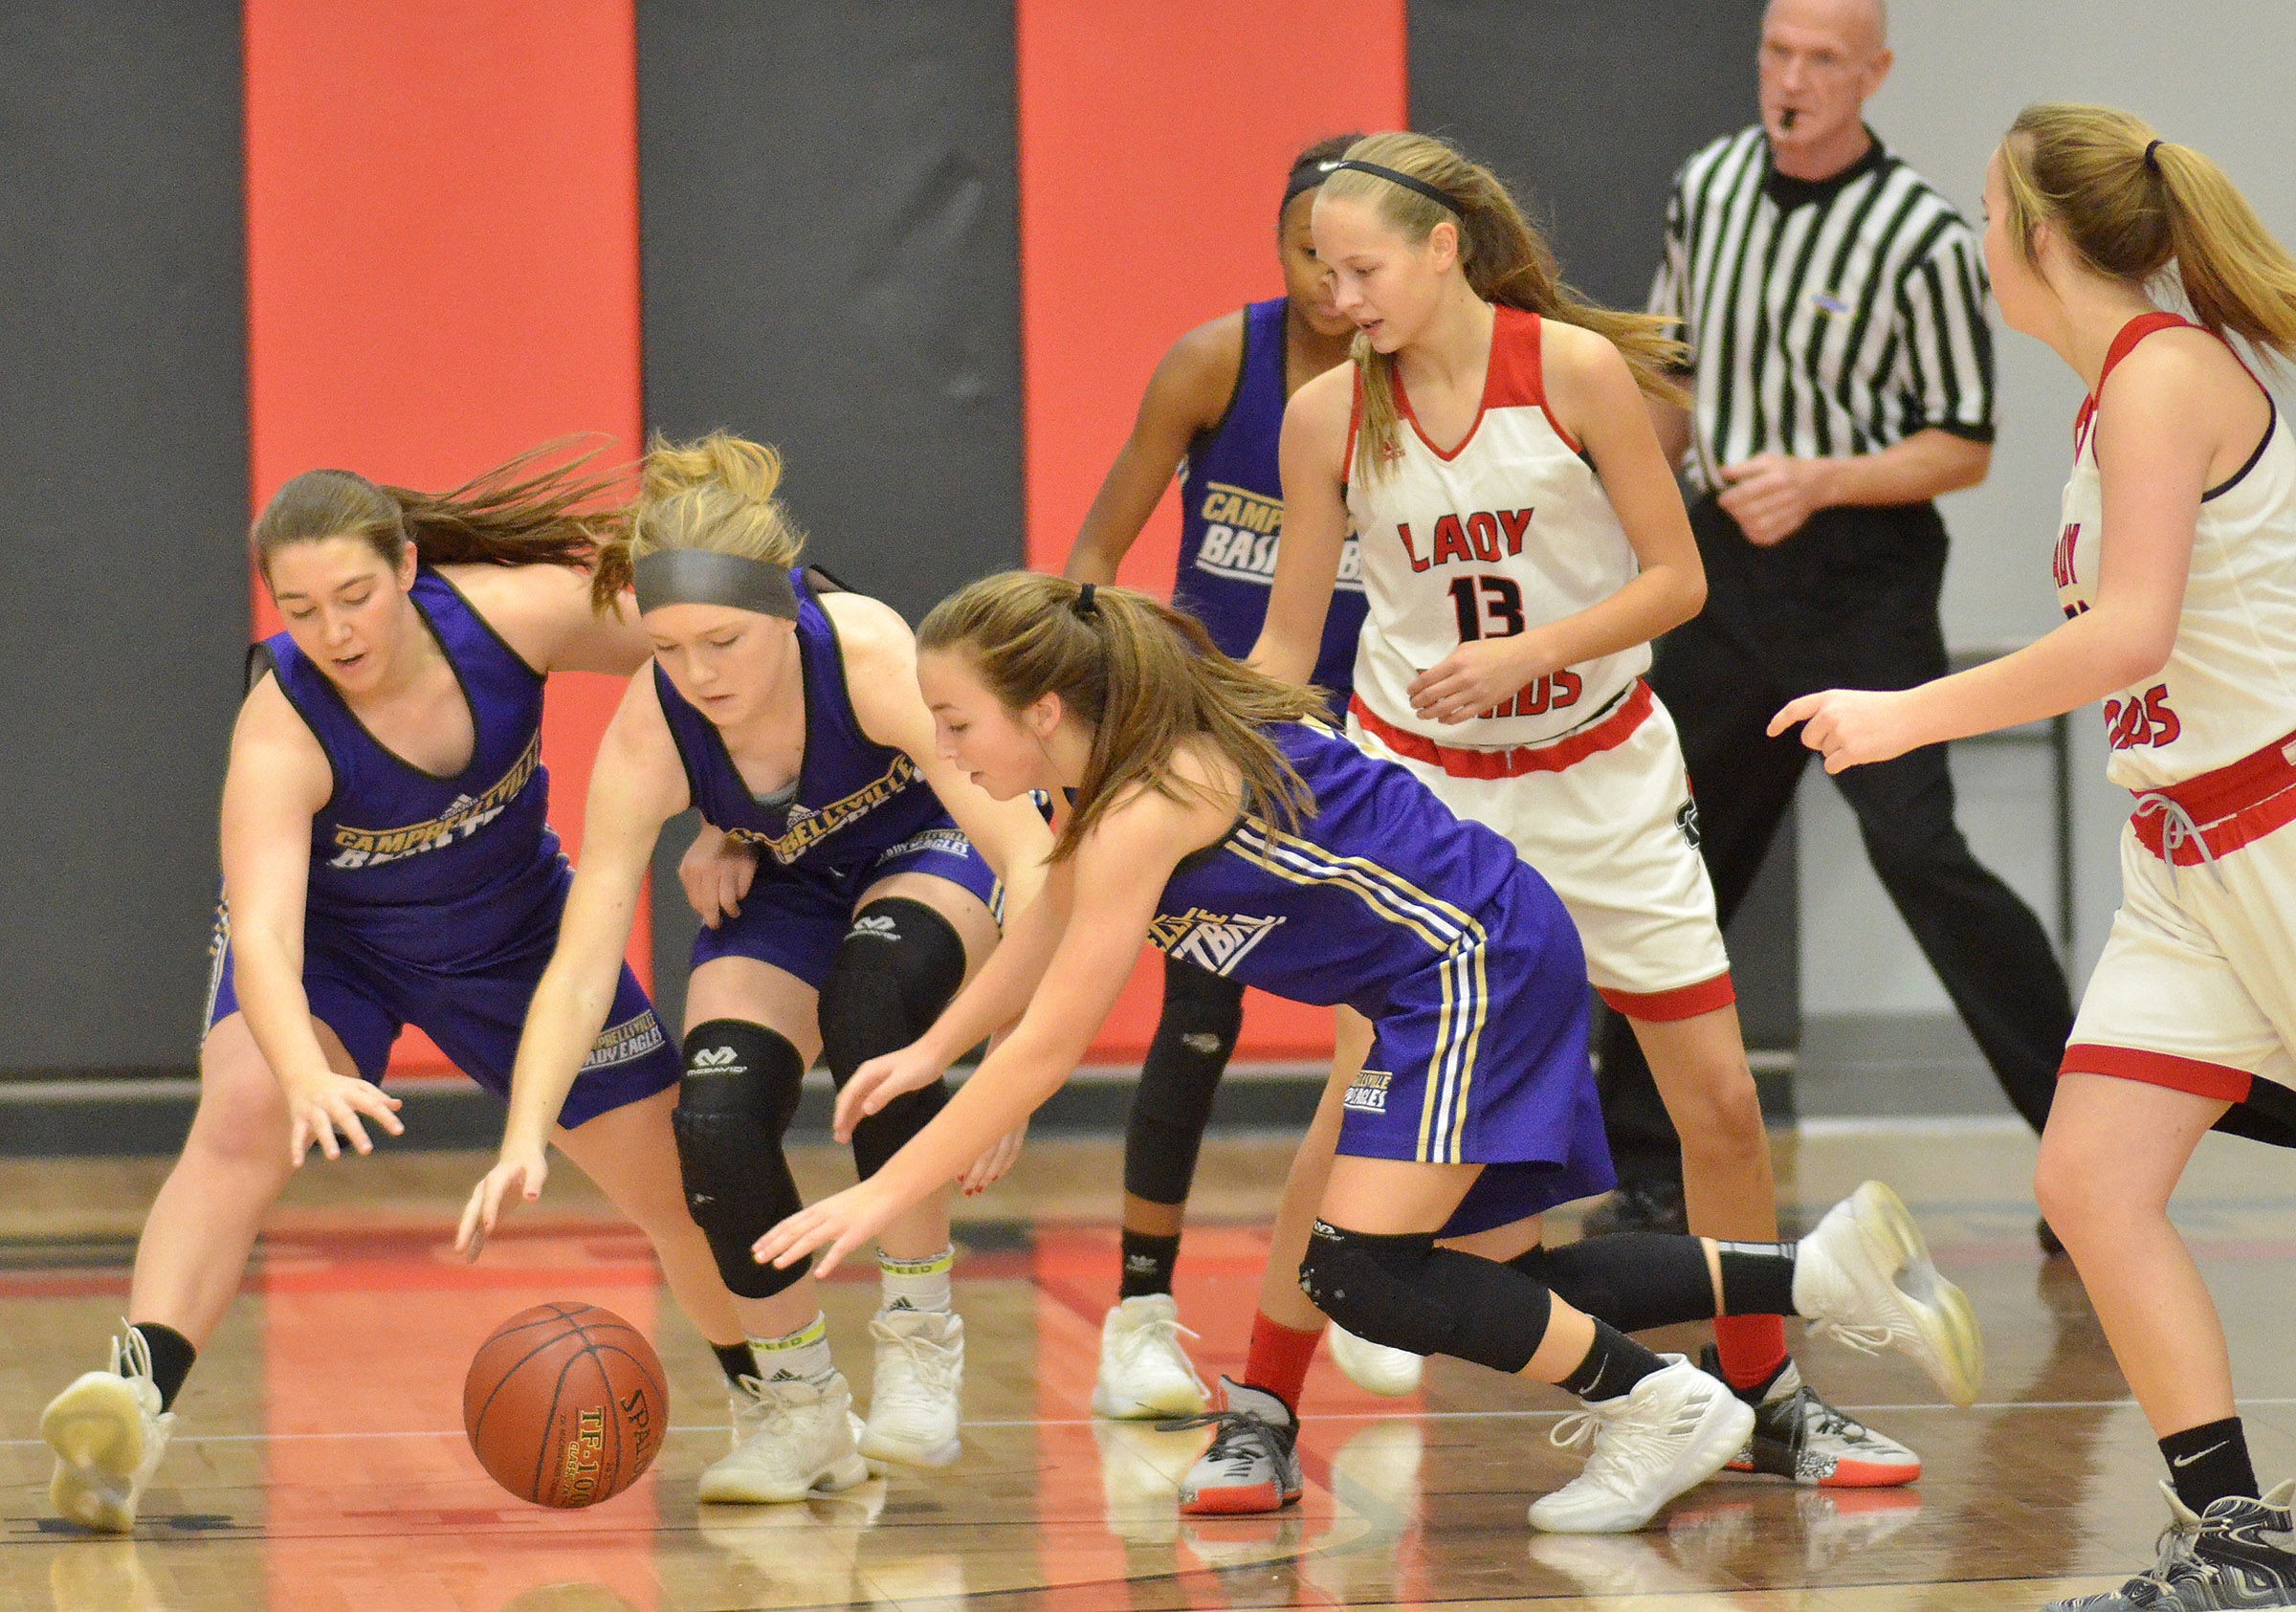 From left, CHS freshmen Abi Wiedewitsch and Catlyn Clausen and Campbellsville Middle School eighth-grader Lainey Watson fight for the ball.